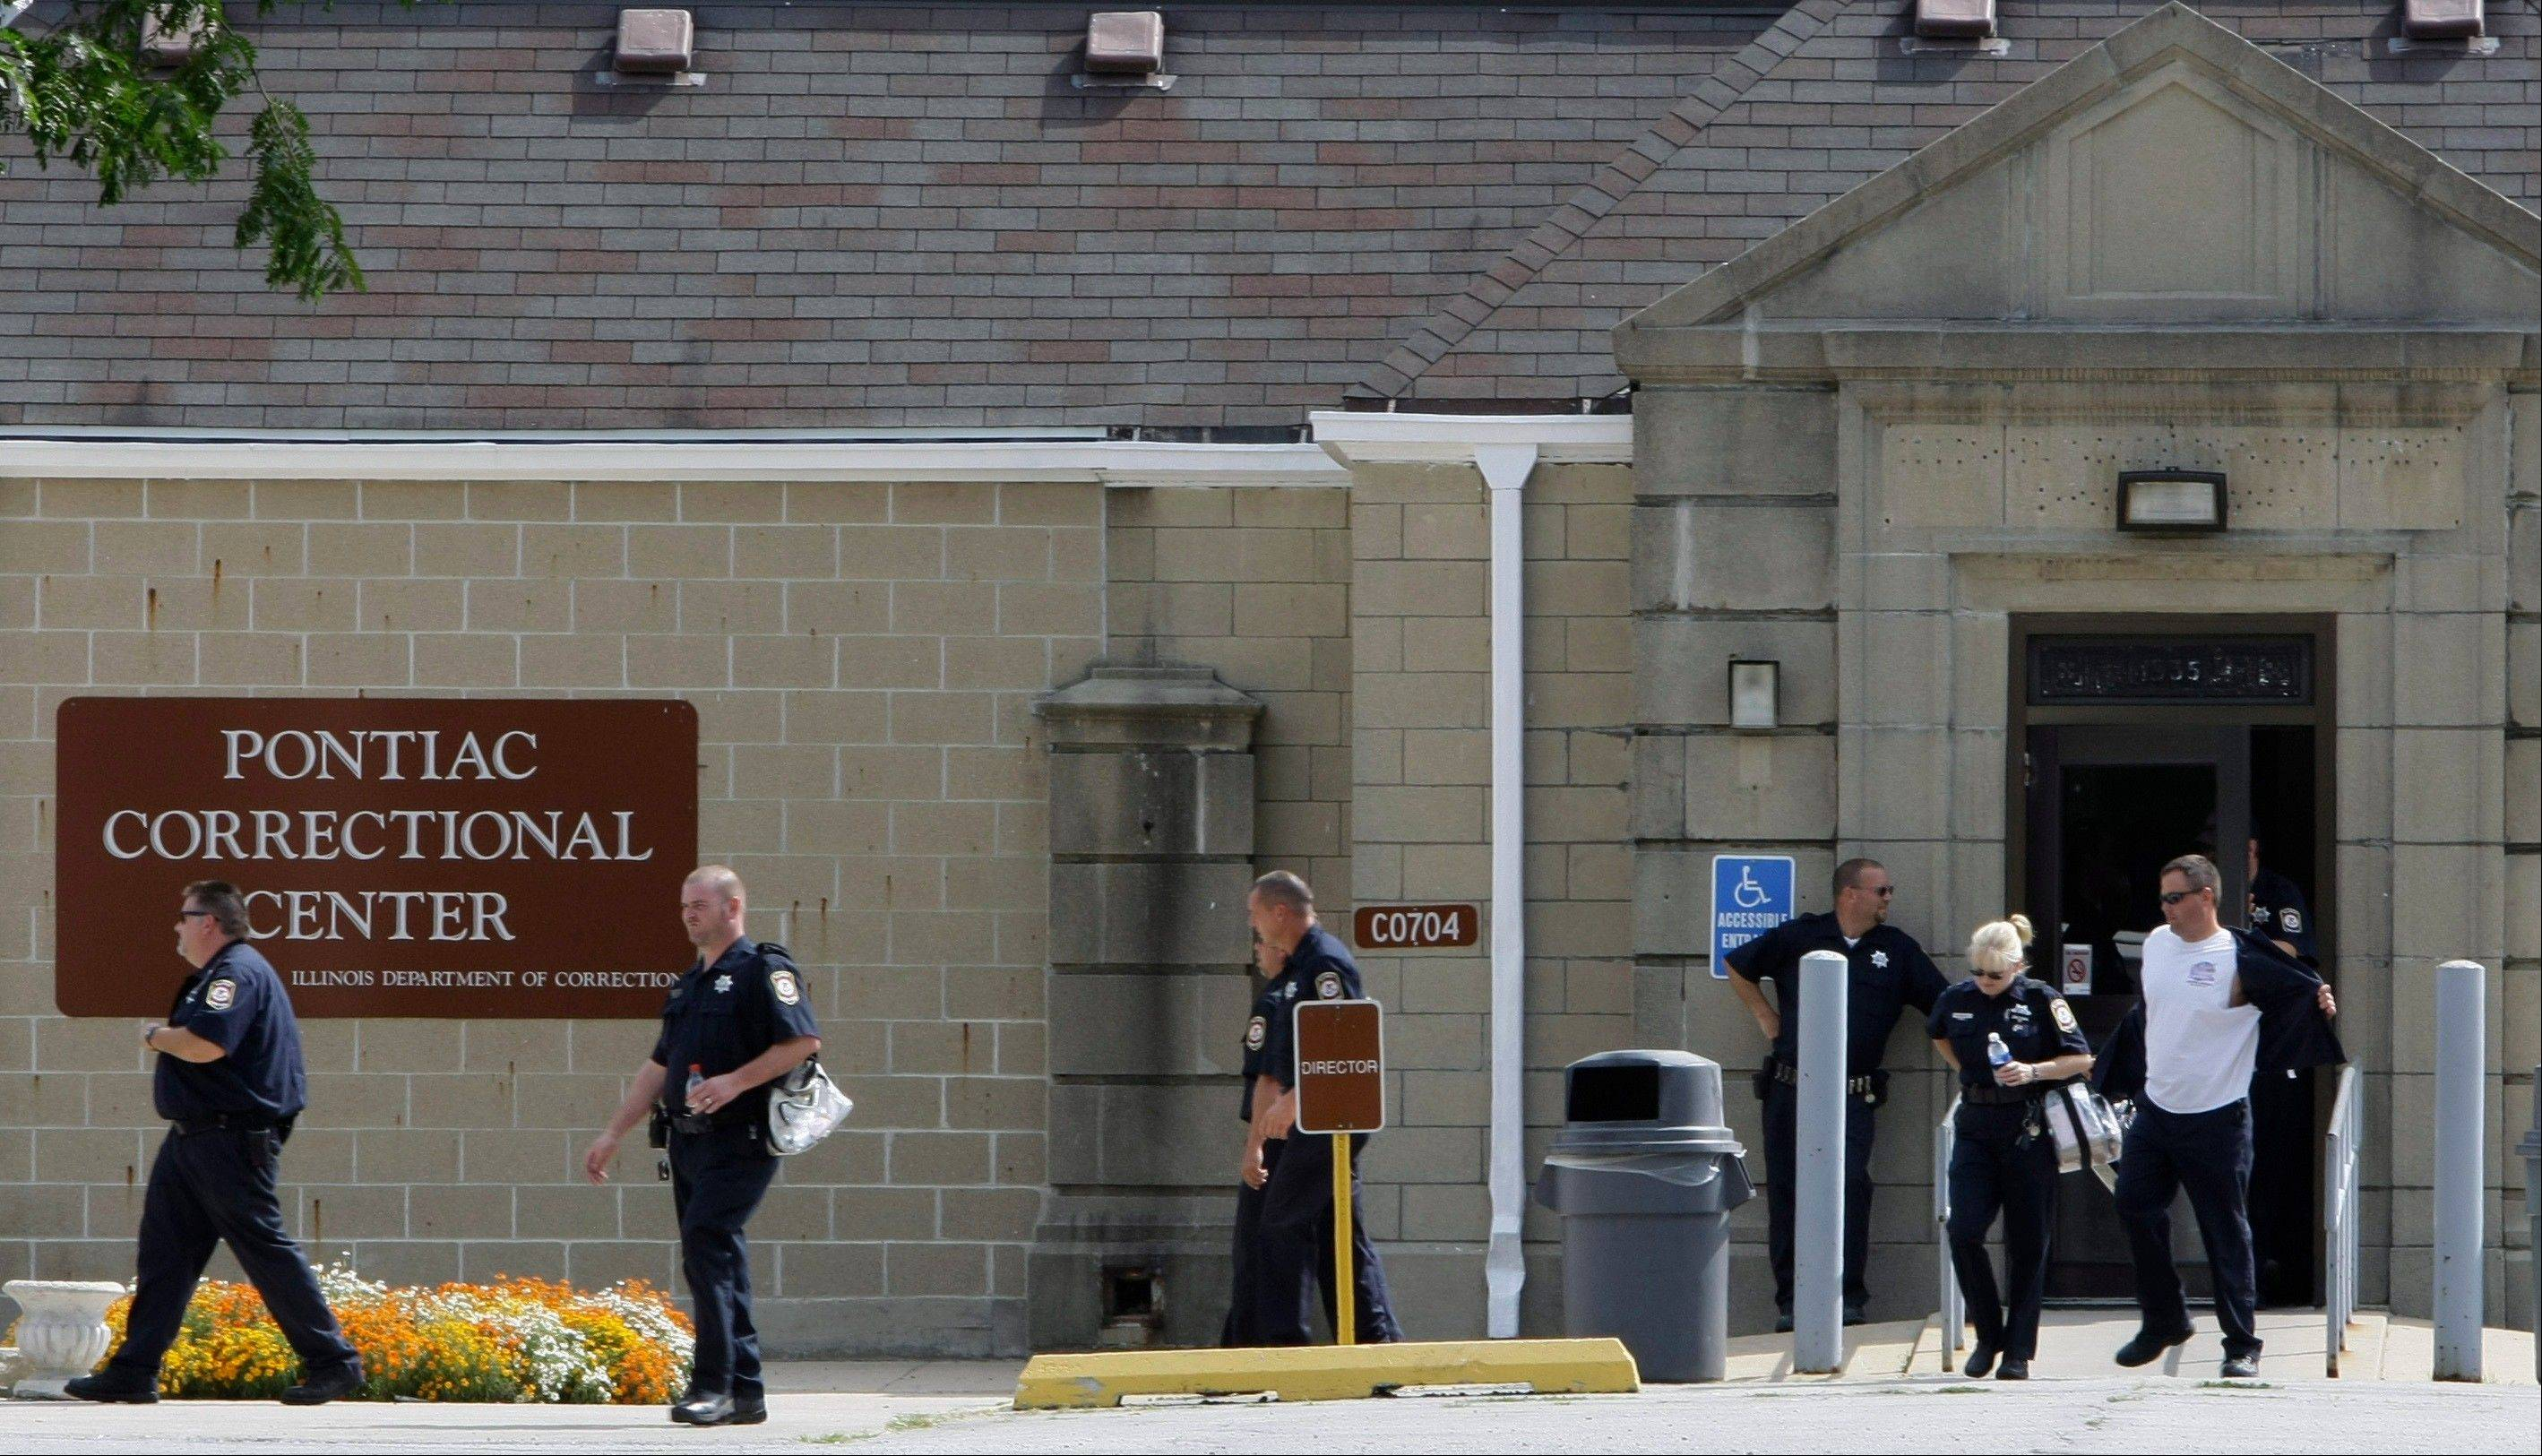 Correction officers leave the Pontiac Correctional Center in Pontiac, Ill. While top Chicago brass lobbies lawmakers to stiffen prison sentences for gun crimes — meaning more inmates in crowded prisons — The Associated Press has learned that overtime pay for those who guard those inmates jumped 34 percent last year.